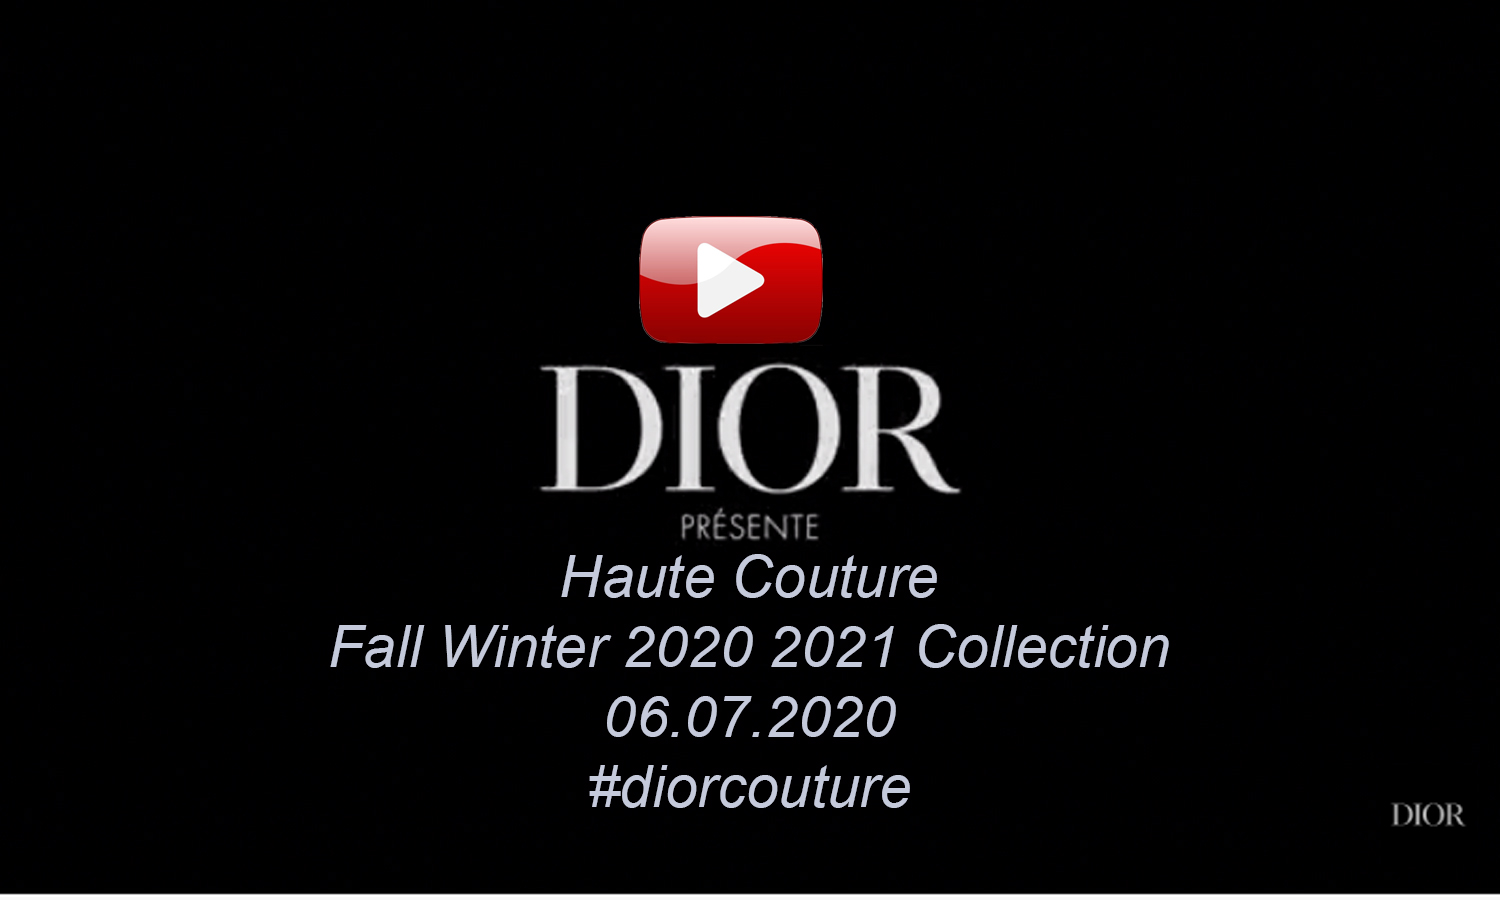 AFRICAN FASHION STYLE MAGAZINE - Fashion Magazine Cover - DIOR Haute Couture Fall Winter 2020 2021 Collection - Paris Fashion Week Fall Winter 2020 2021 - Photographer DAN NGU - Media Partner DN AFRICA - STUDIO 24 NIGERIA - STUDIO 24 INTERNATIONAL - Ifeanyi Christopher Oputa MD AND CEO OF COLVI LIMITED AND STUDIO 24 - Nahomie NOOR COULIBALY -